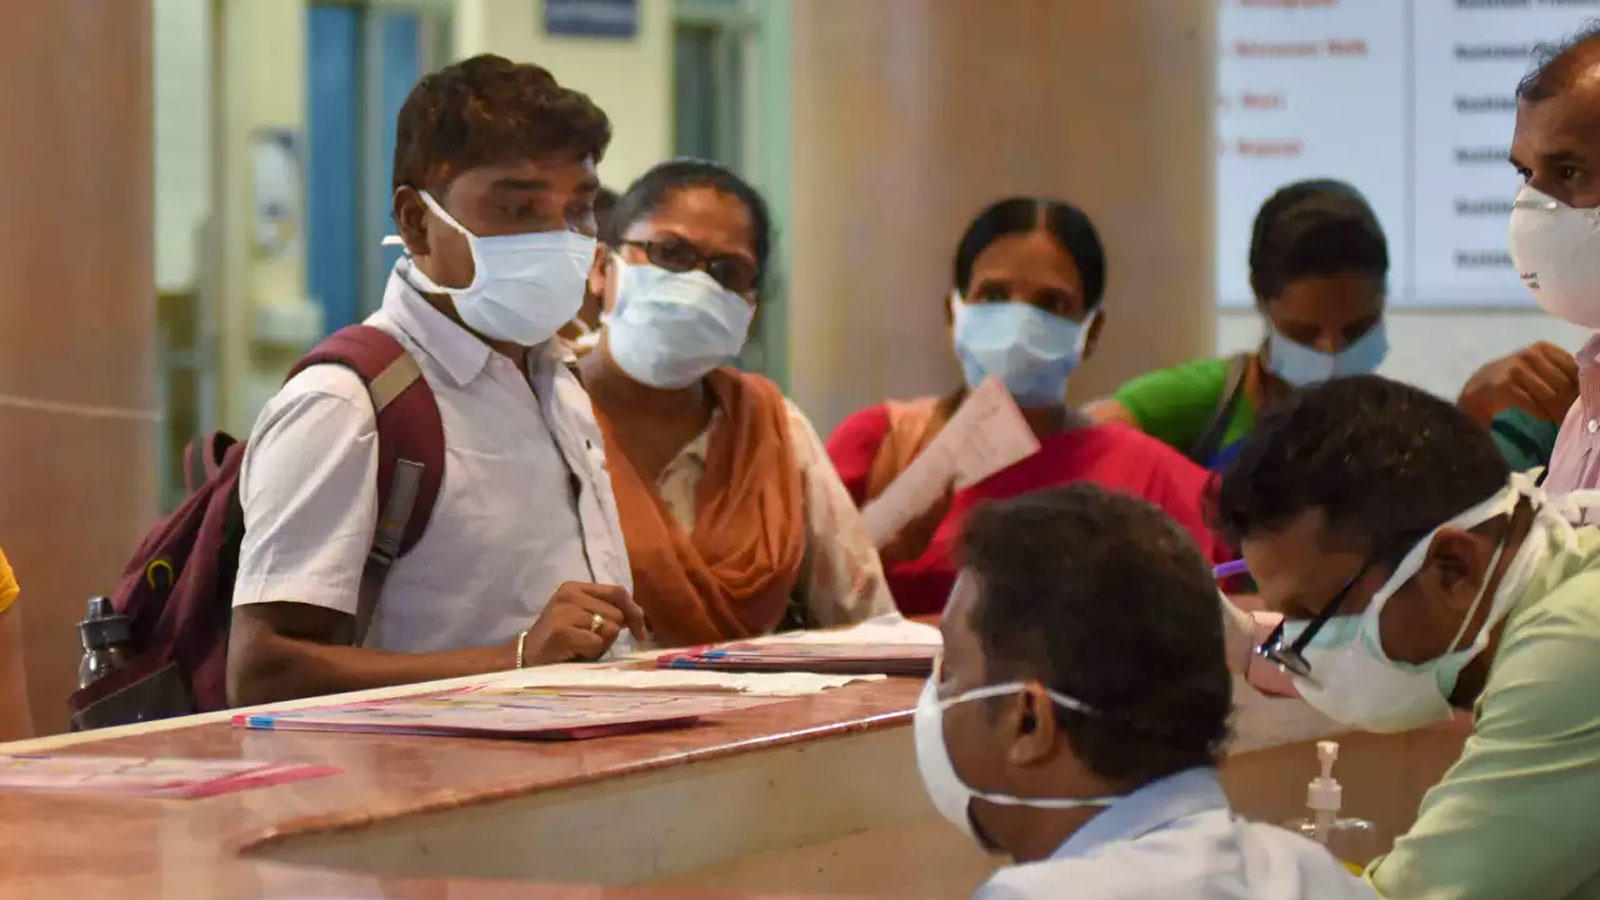 covid-19-indias-recovered-cases-are-now-double-the-active-infections-informs-health-ministry